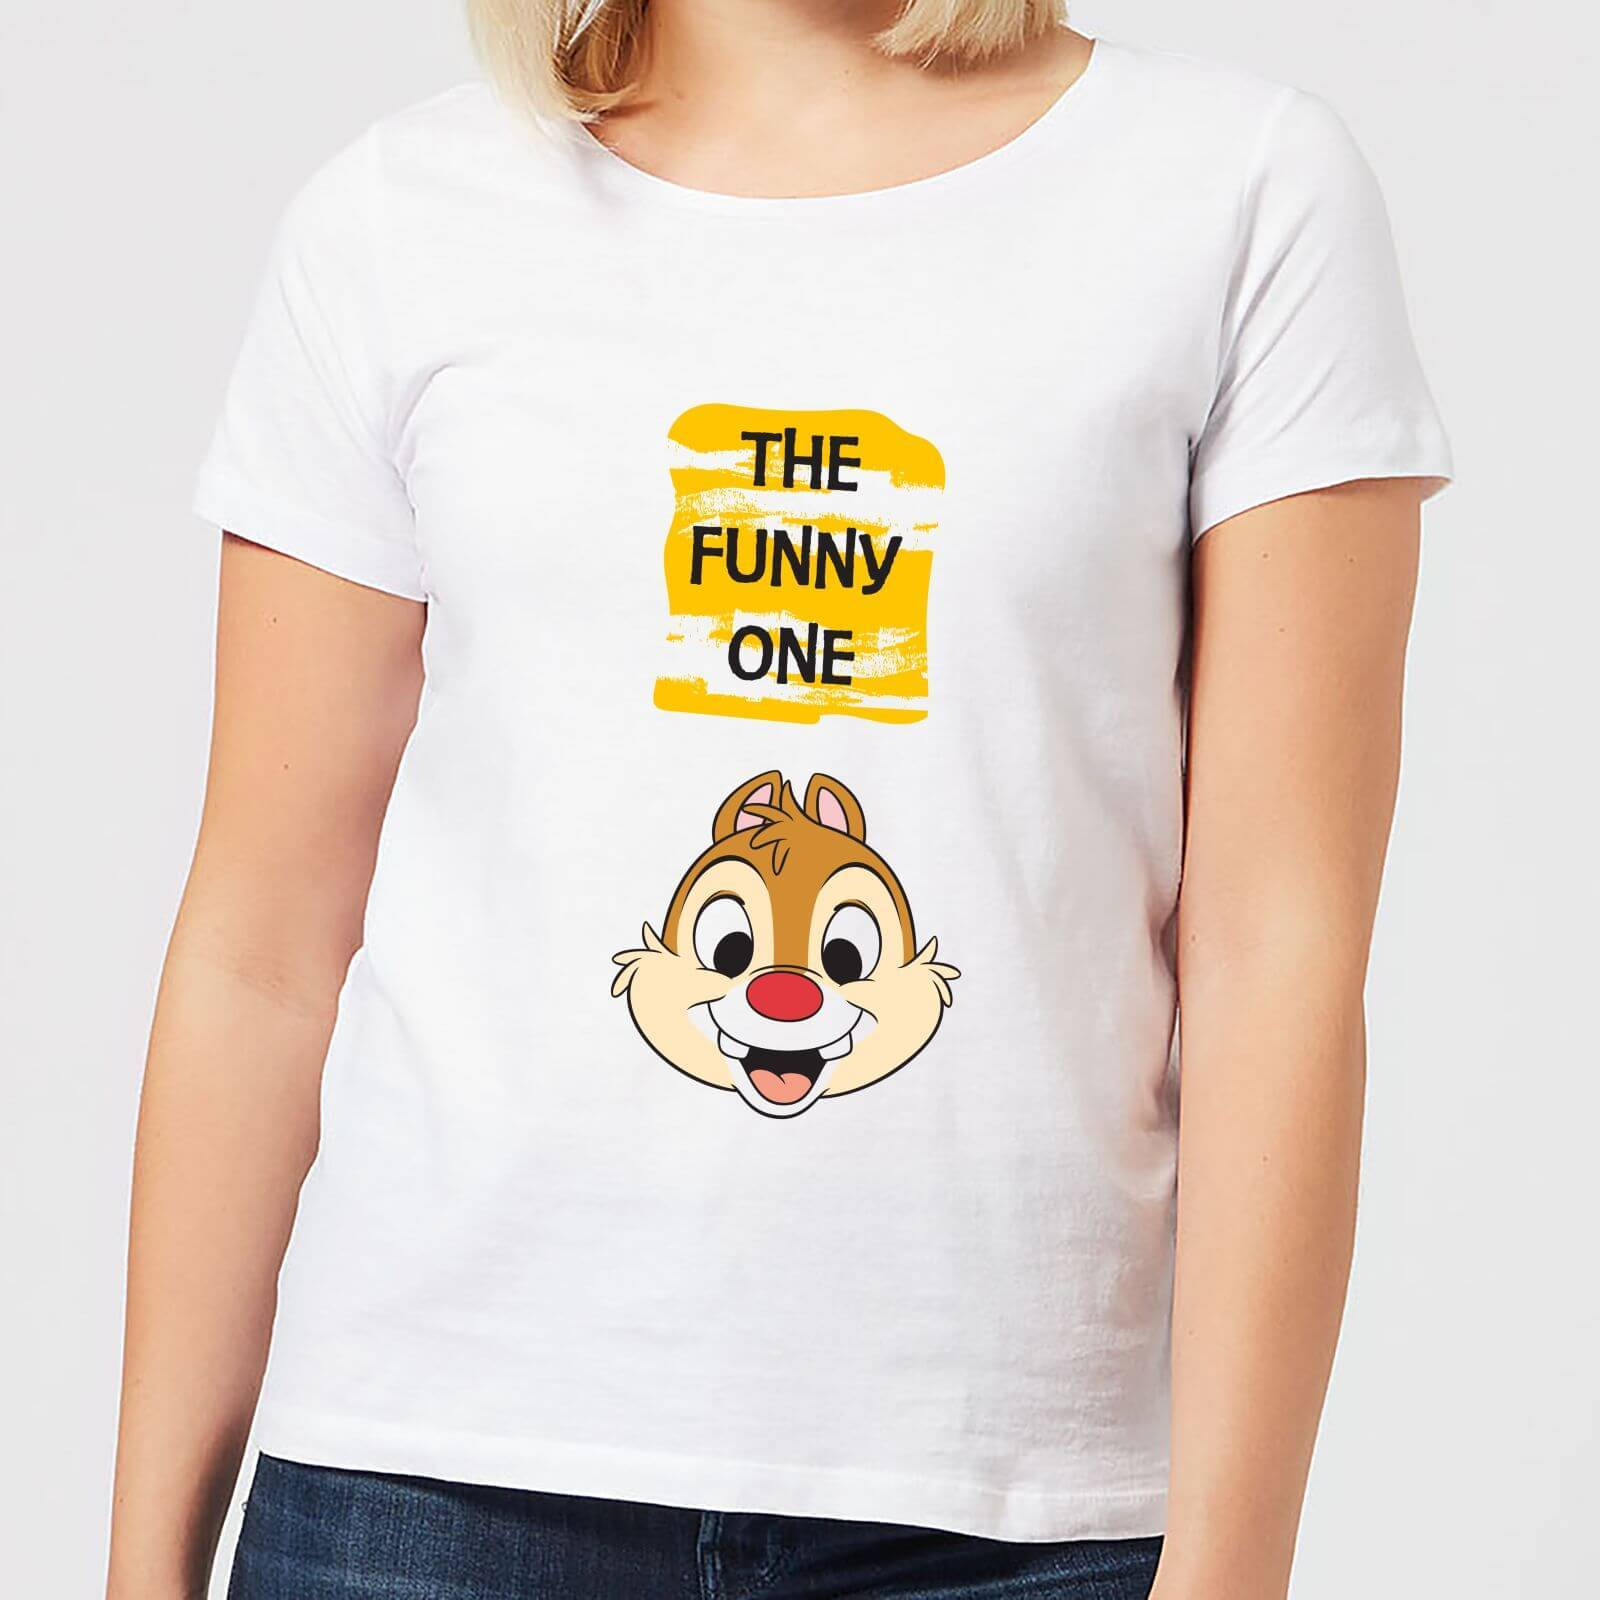 Disney Chip 'N' Dale The Funny One Women's T-Shirt - White - XL - White